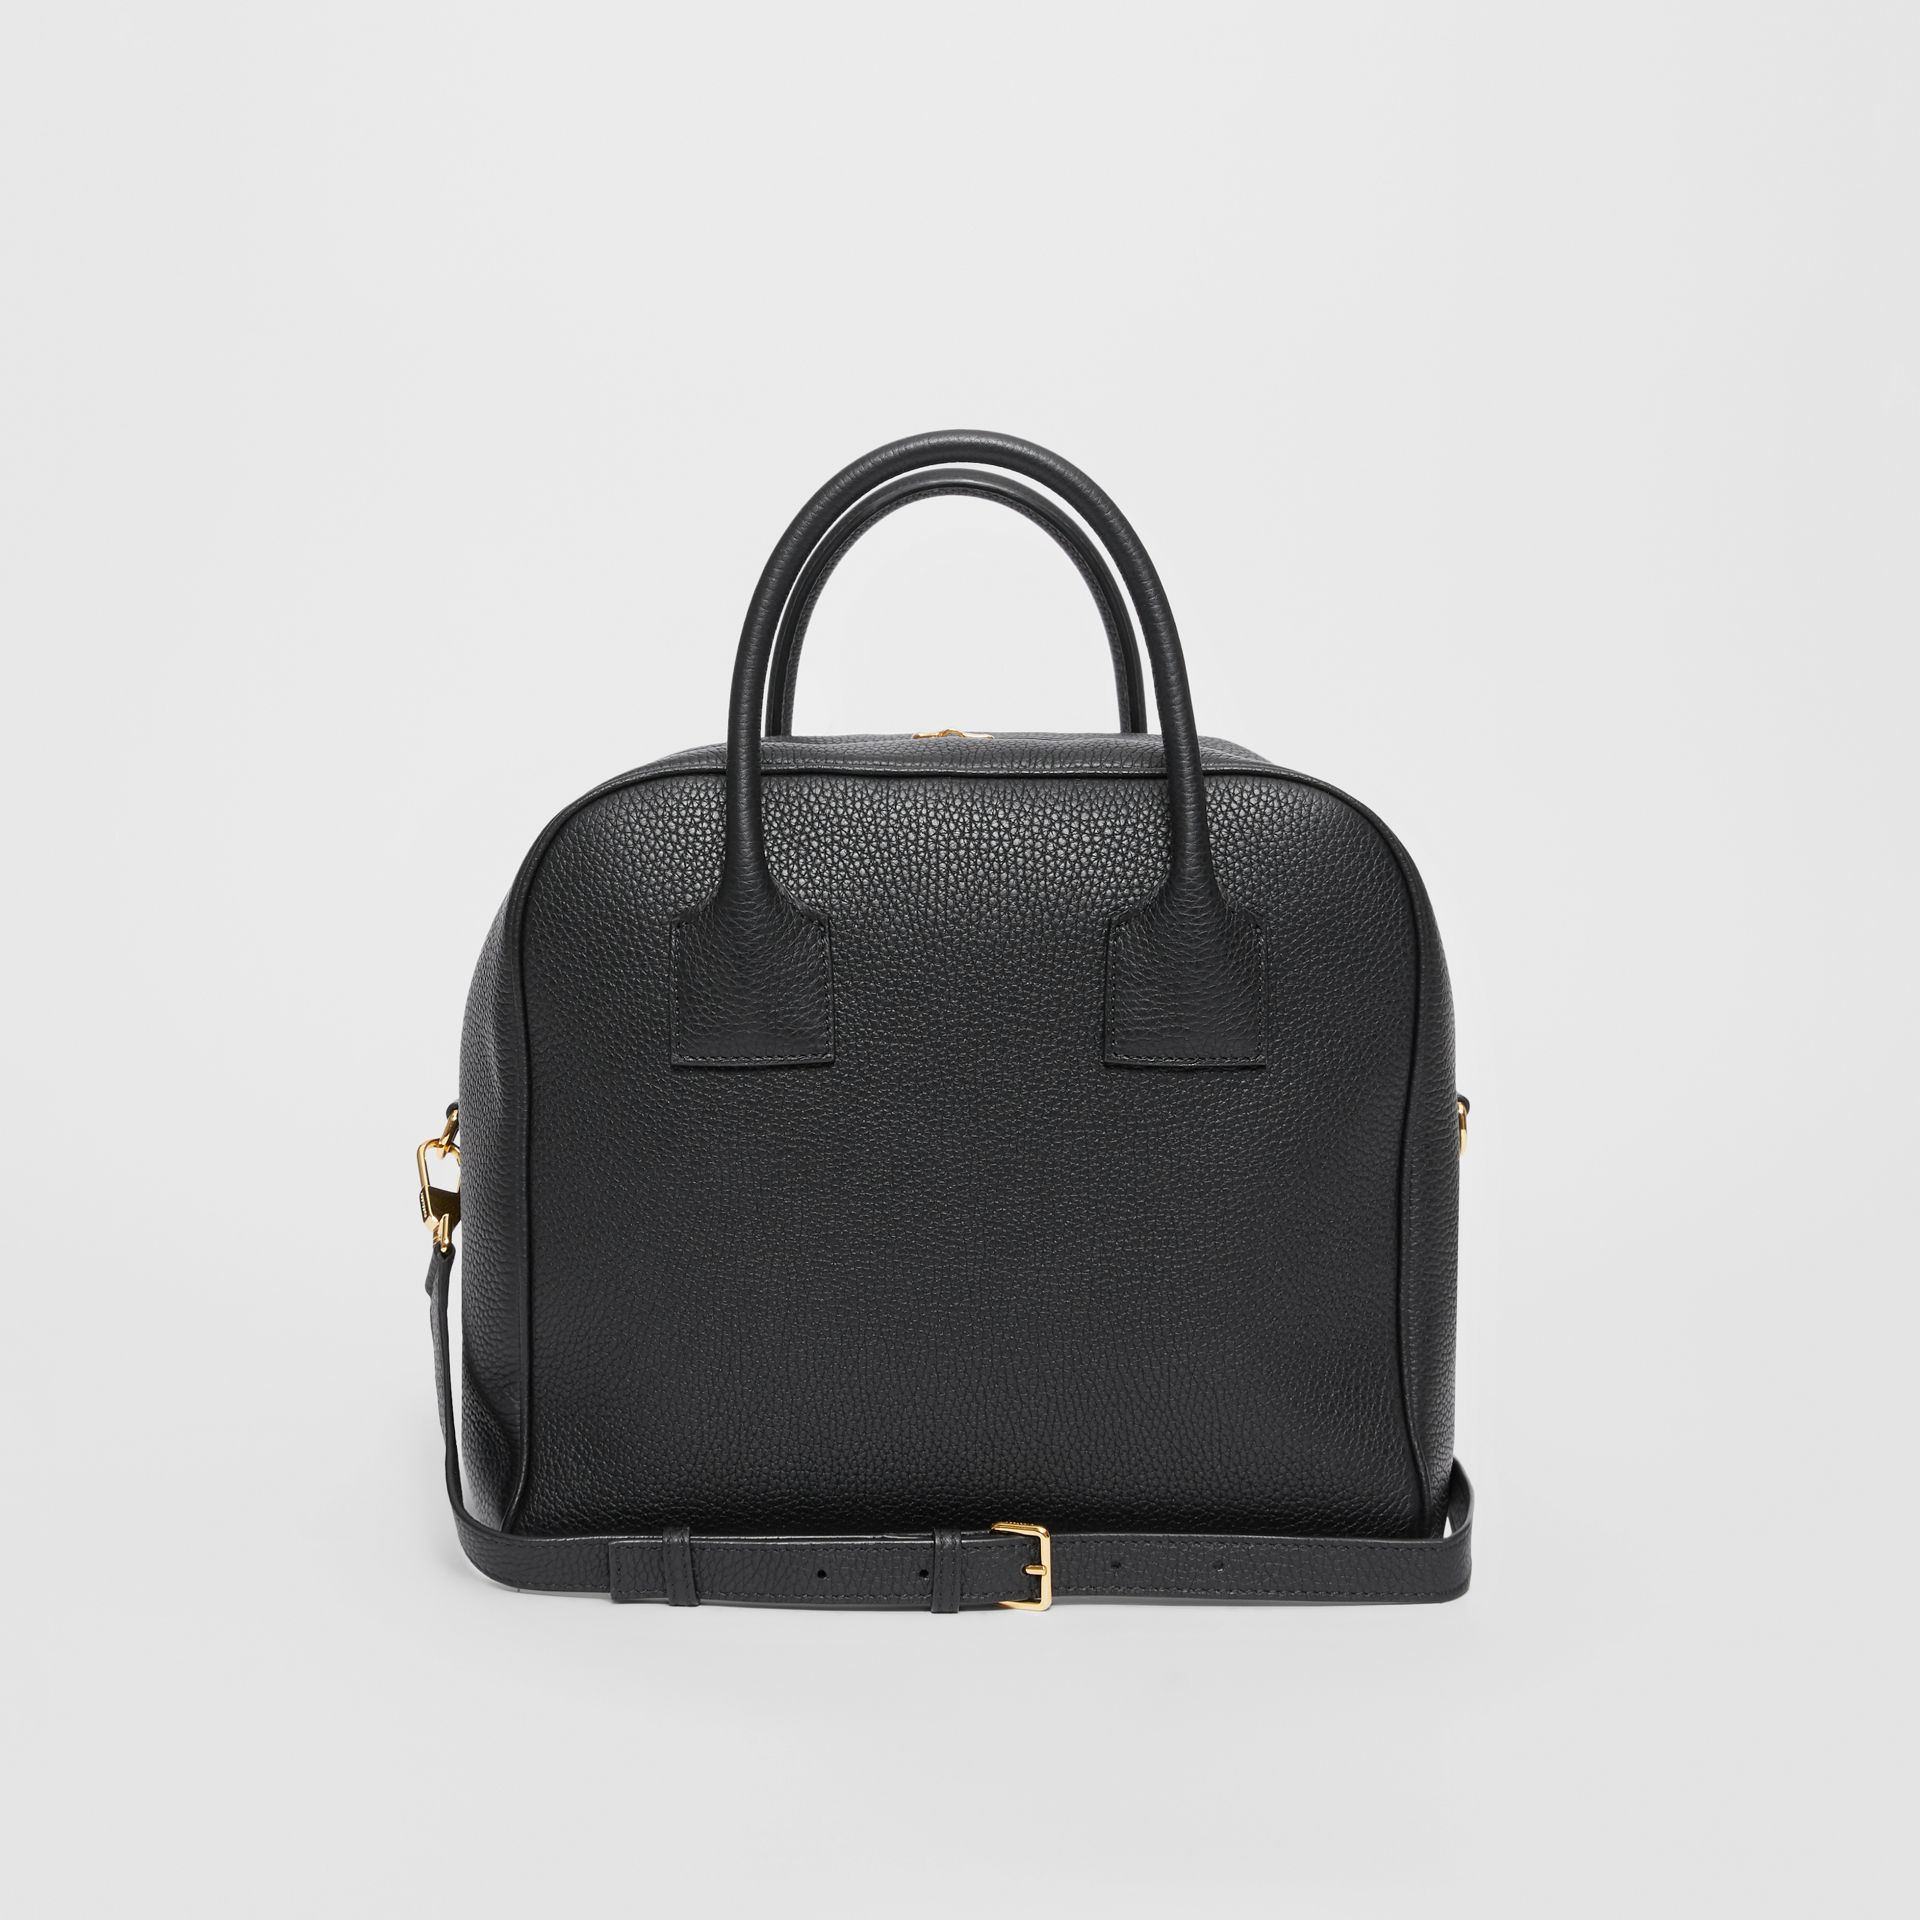 Medium Leather Cube Bag in Black - Women | Burberry Hong Kong S.A.R - gallery image 7